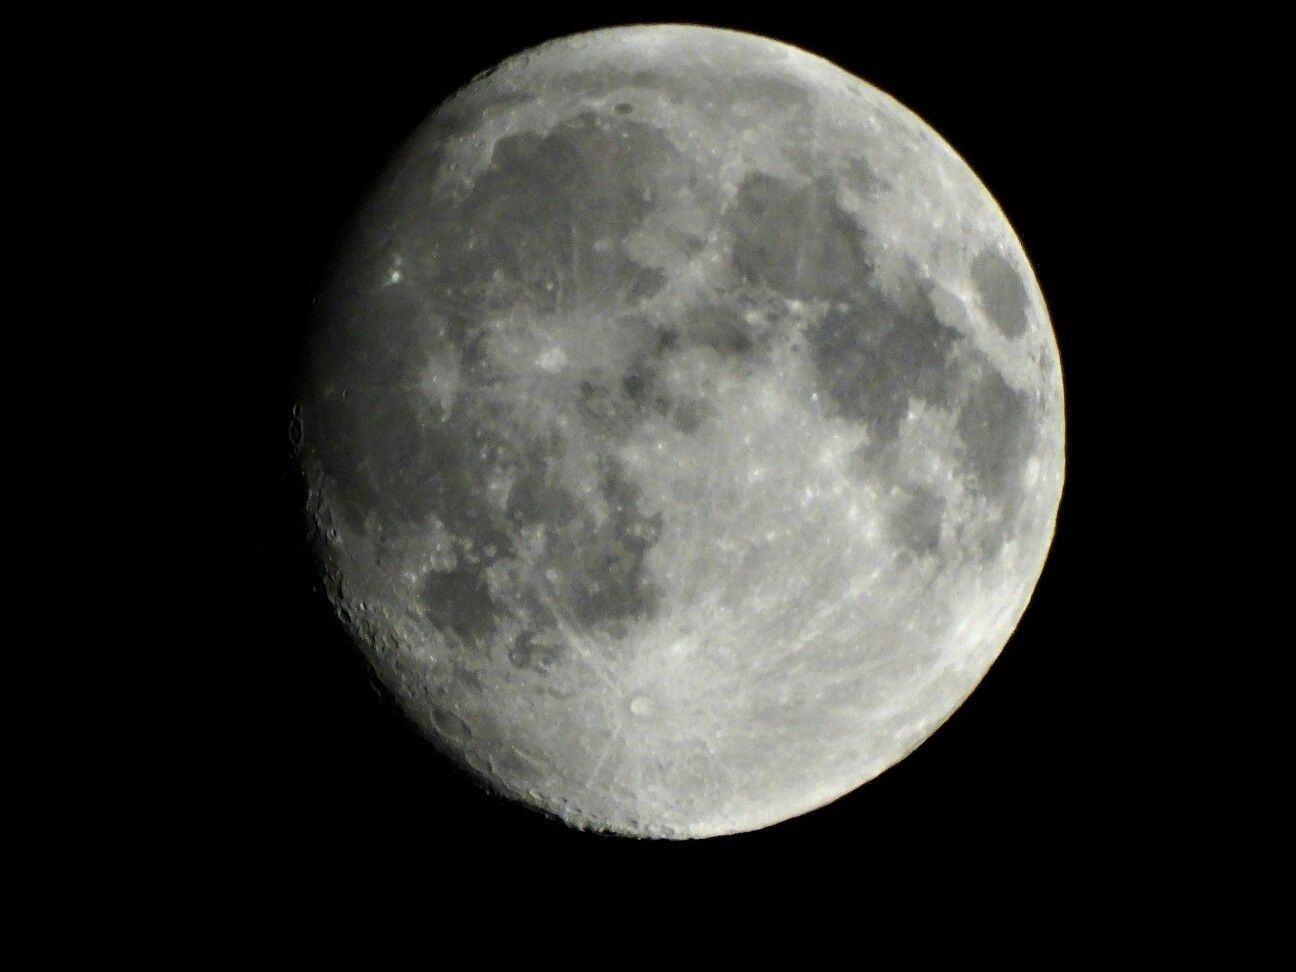 The moon from a Dutch view